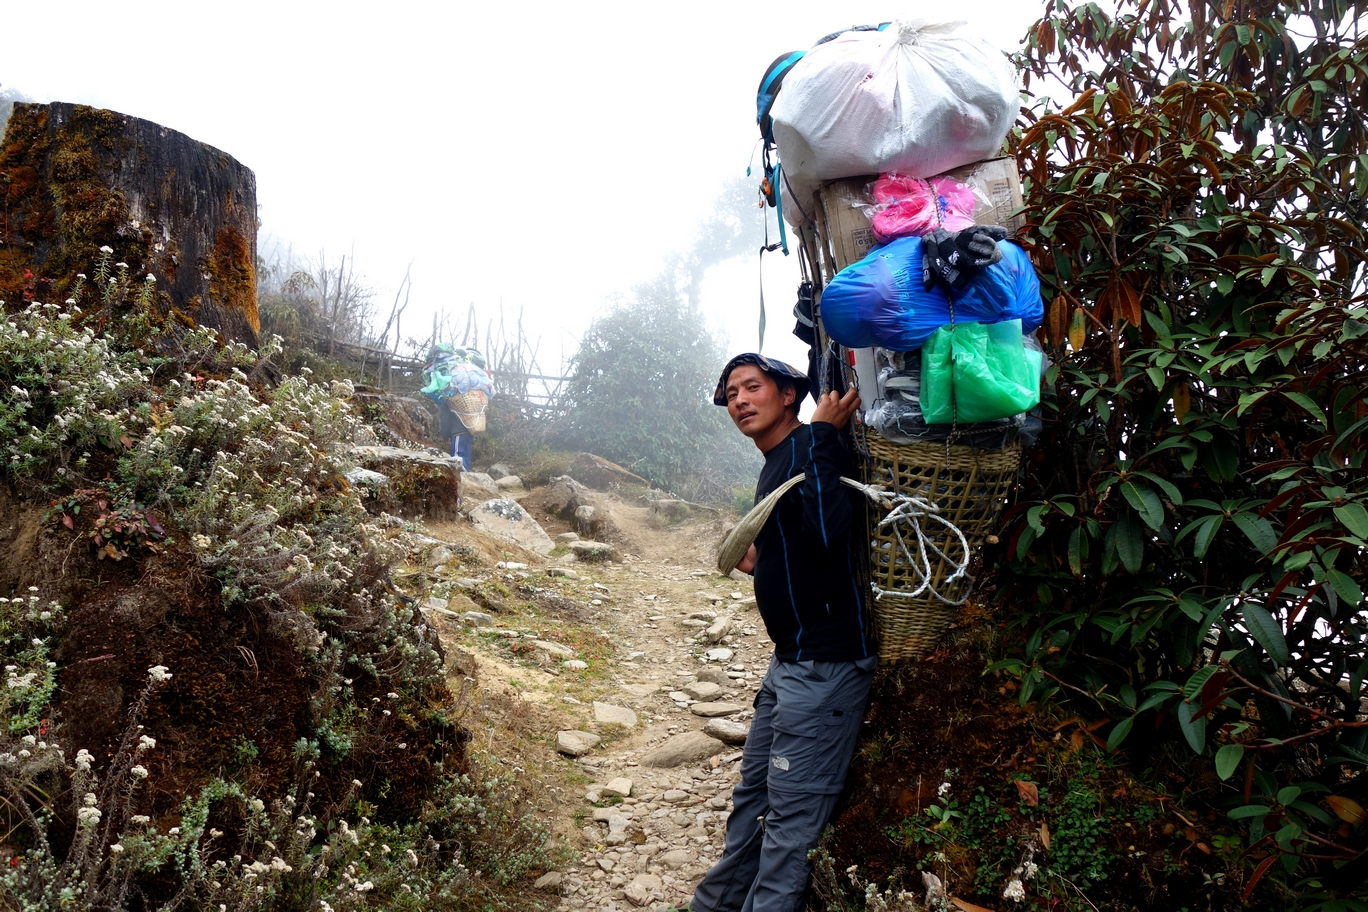 This is a porter I crossed paths with on the way down to Kinja. His load was 80kg, he said (that's 176 pounds for you Americans). His friend, (in the background) was carrying 100kg.